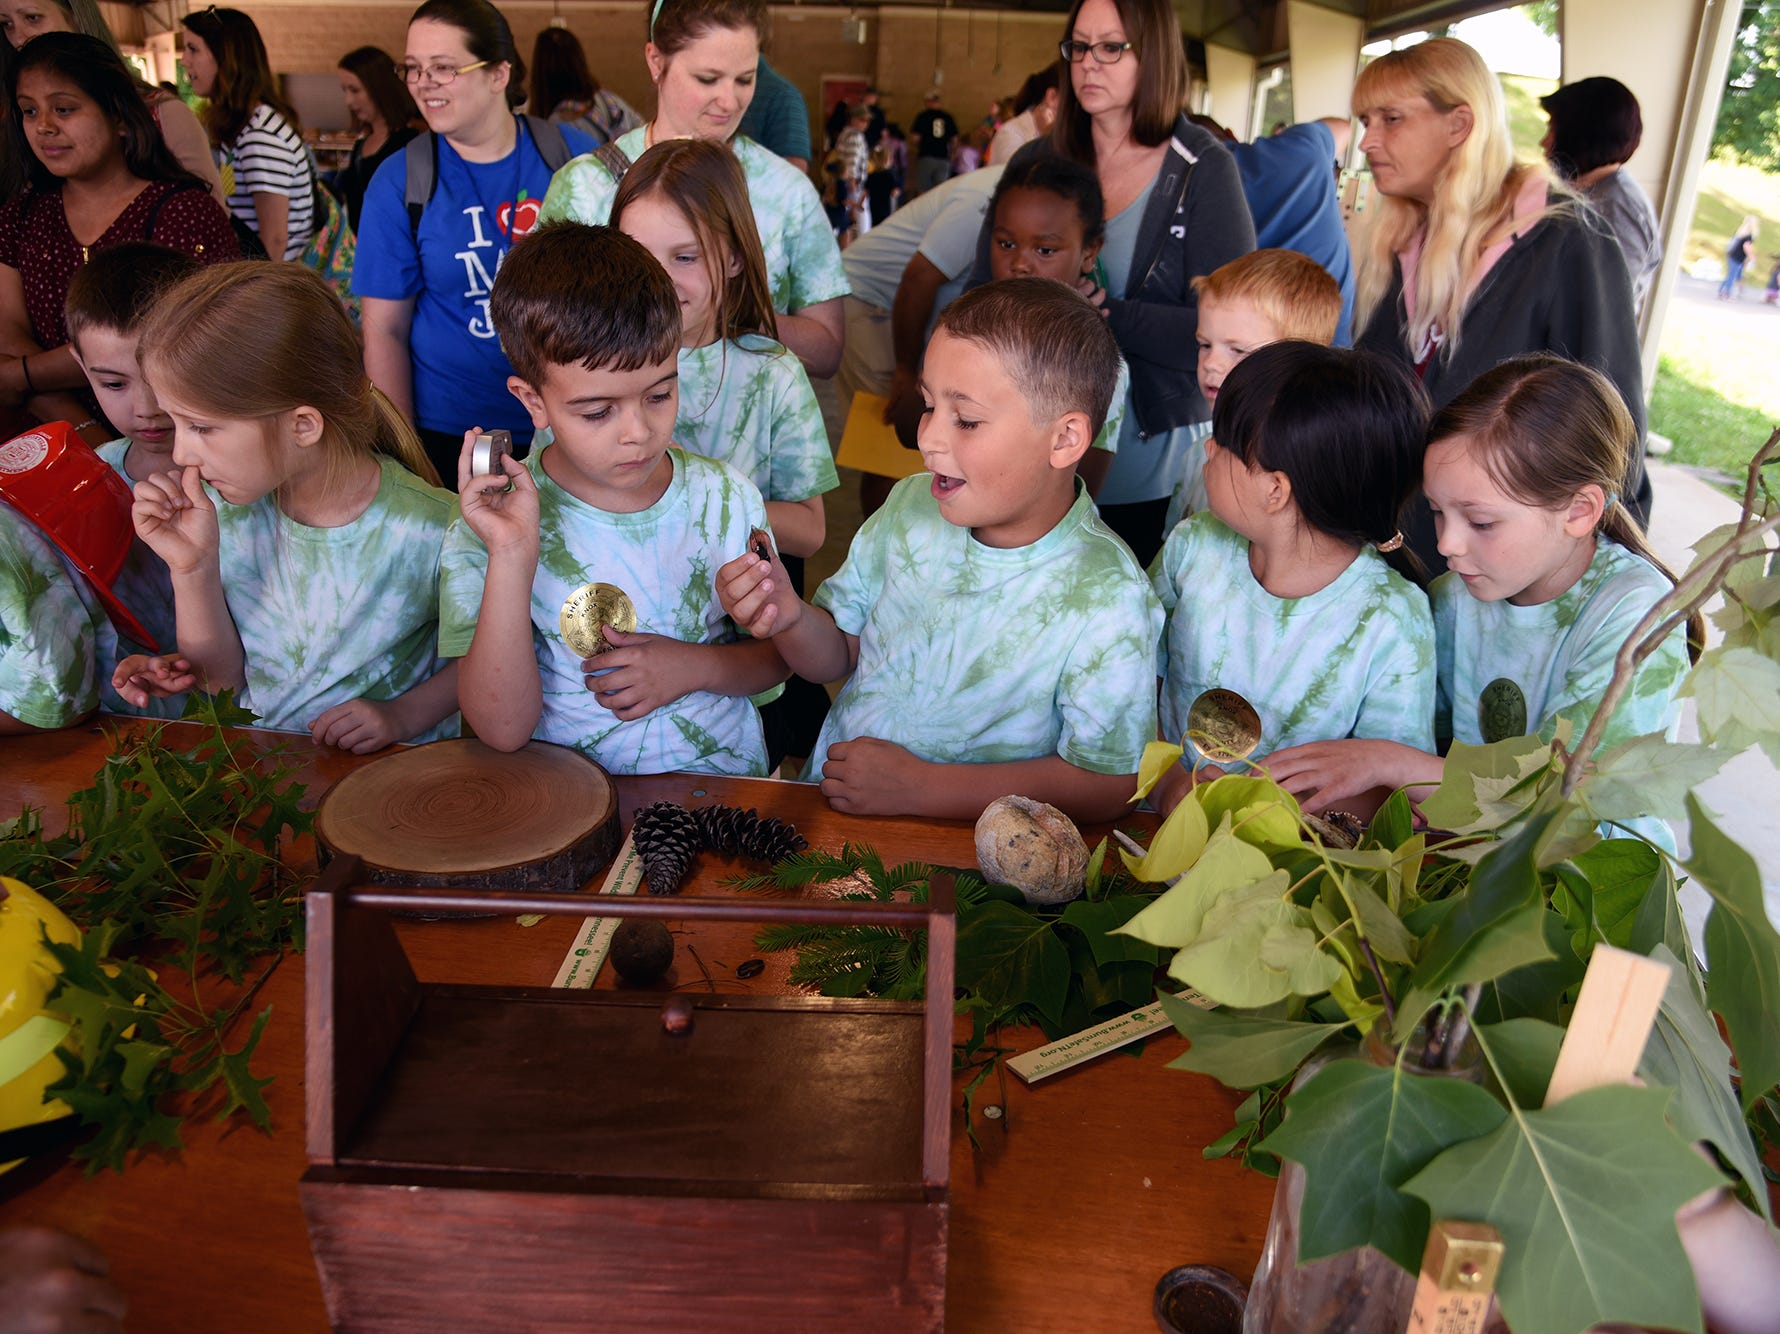 Students marvel over the bugs and plants at the Tennessee Division of Forestry display during Farm Day. Over 600 Knox County School children attended the annual Knox County Farm Bureau Ag in the Classroom Farm Day at Chilhowee Park Tuesday, May 7, 2019.